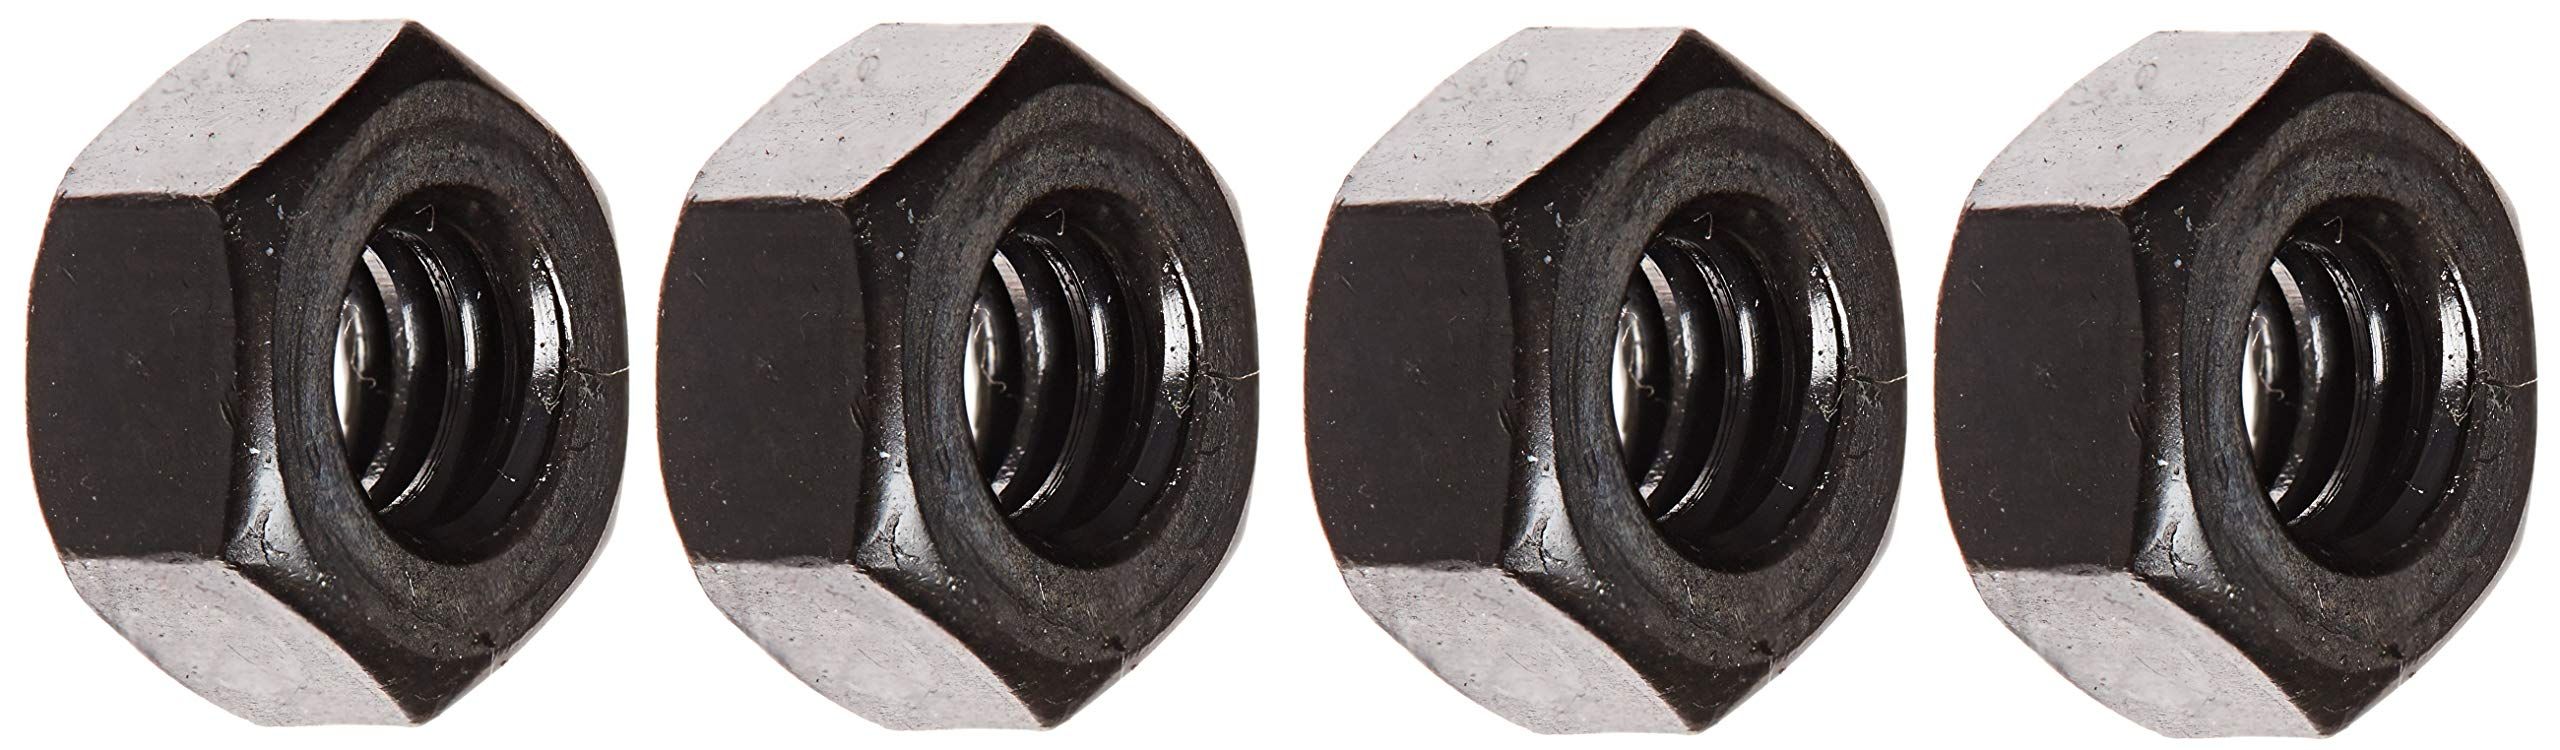 Steel Hex Nut, Black Oxide Finish, Grade 5, ASME B18.2.2, 1/4''-20 Thread Size, 7/16'' Width Across Flats, 7/32'' Thick (Pack of 100) (Fоur Paсk) by Small Parts